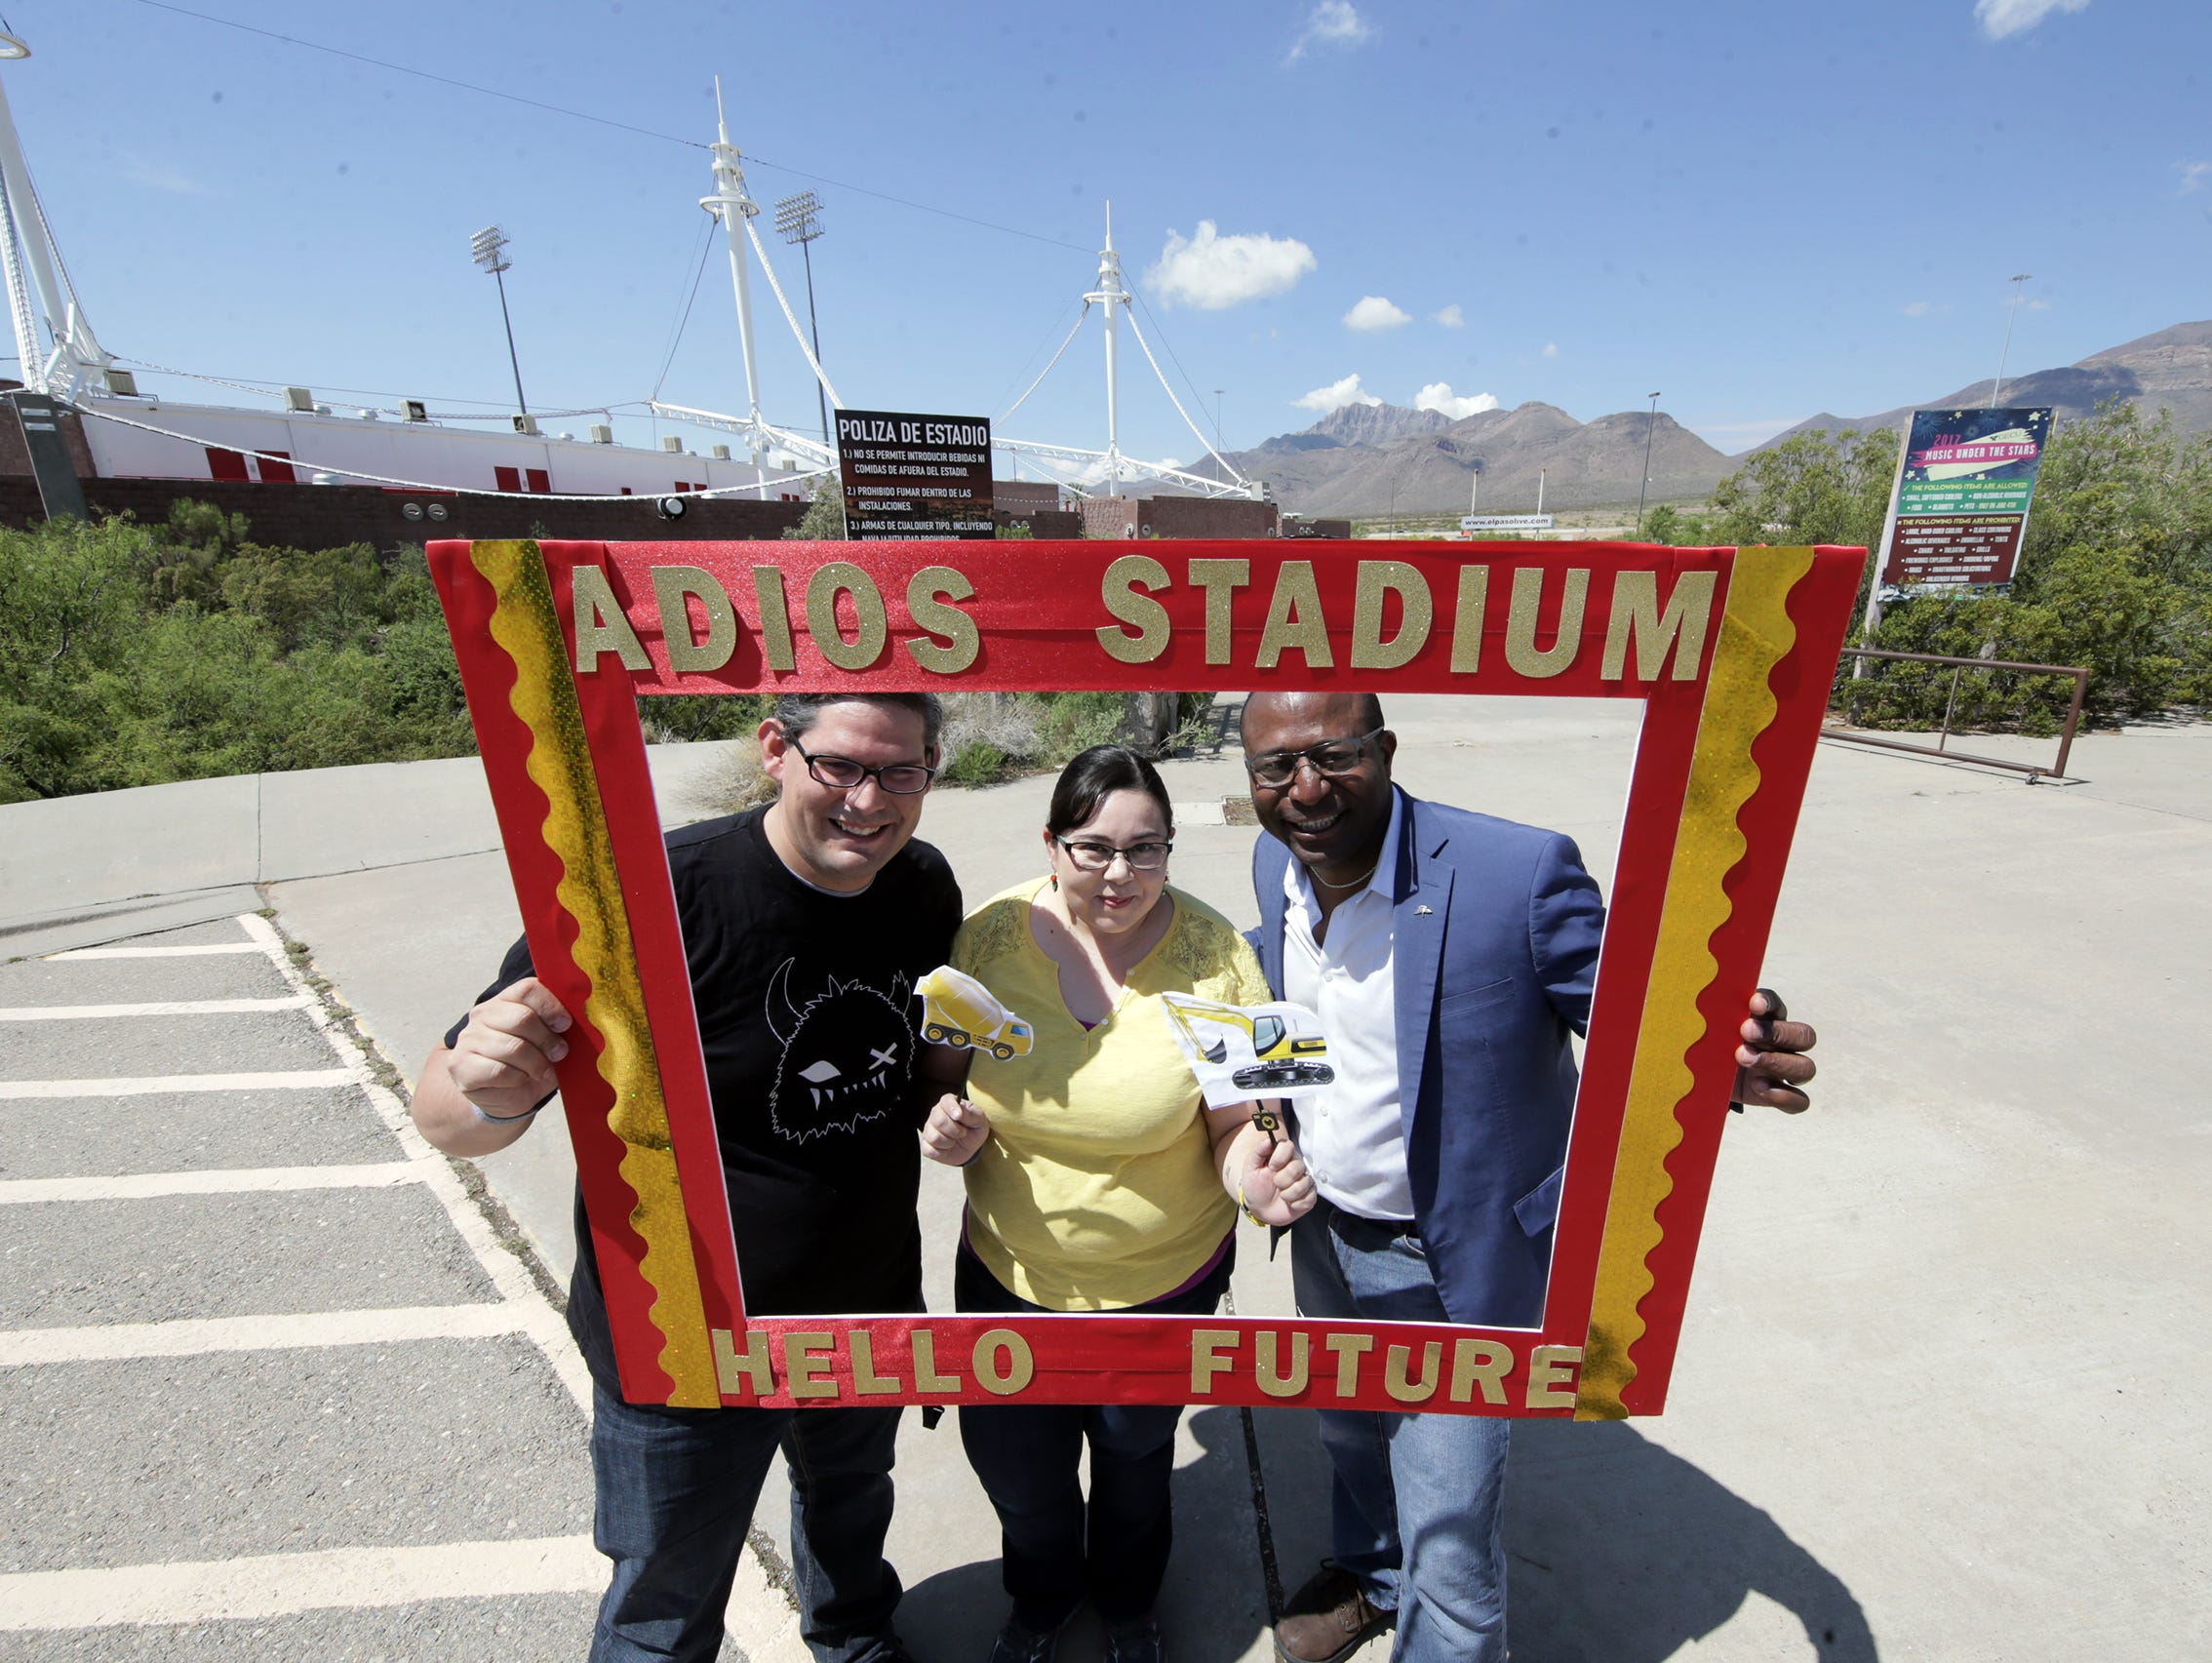 Saturday was a day of goodbyes for fans of Cohen Stadium as the city of El Paso held Selfie Day at Cohen Stadium to give El Pasoans a chance to say goodbye to the former home of the El Paso Diablos. The event included 25-cent hot dogs, harkening back to the days of Diablo baseball.